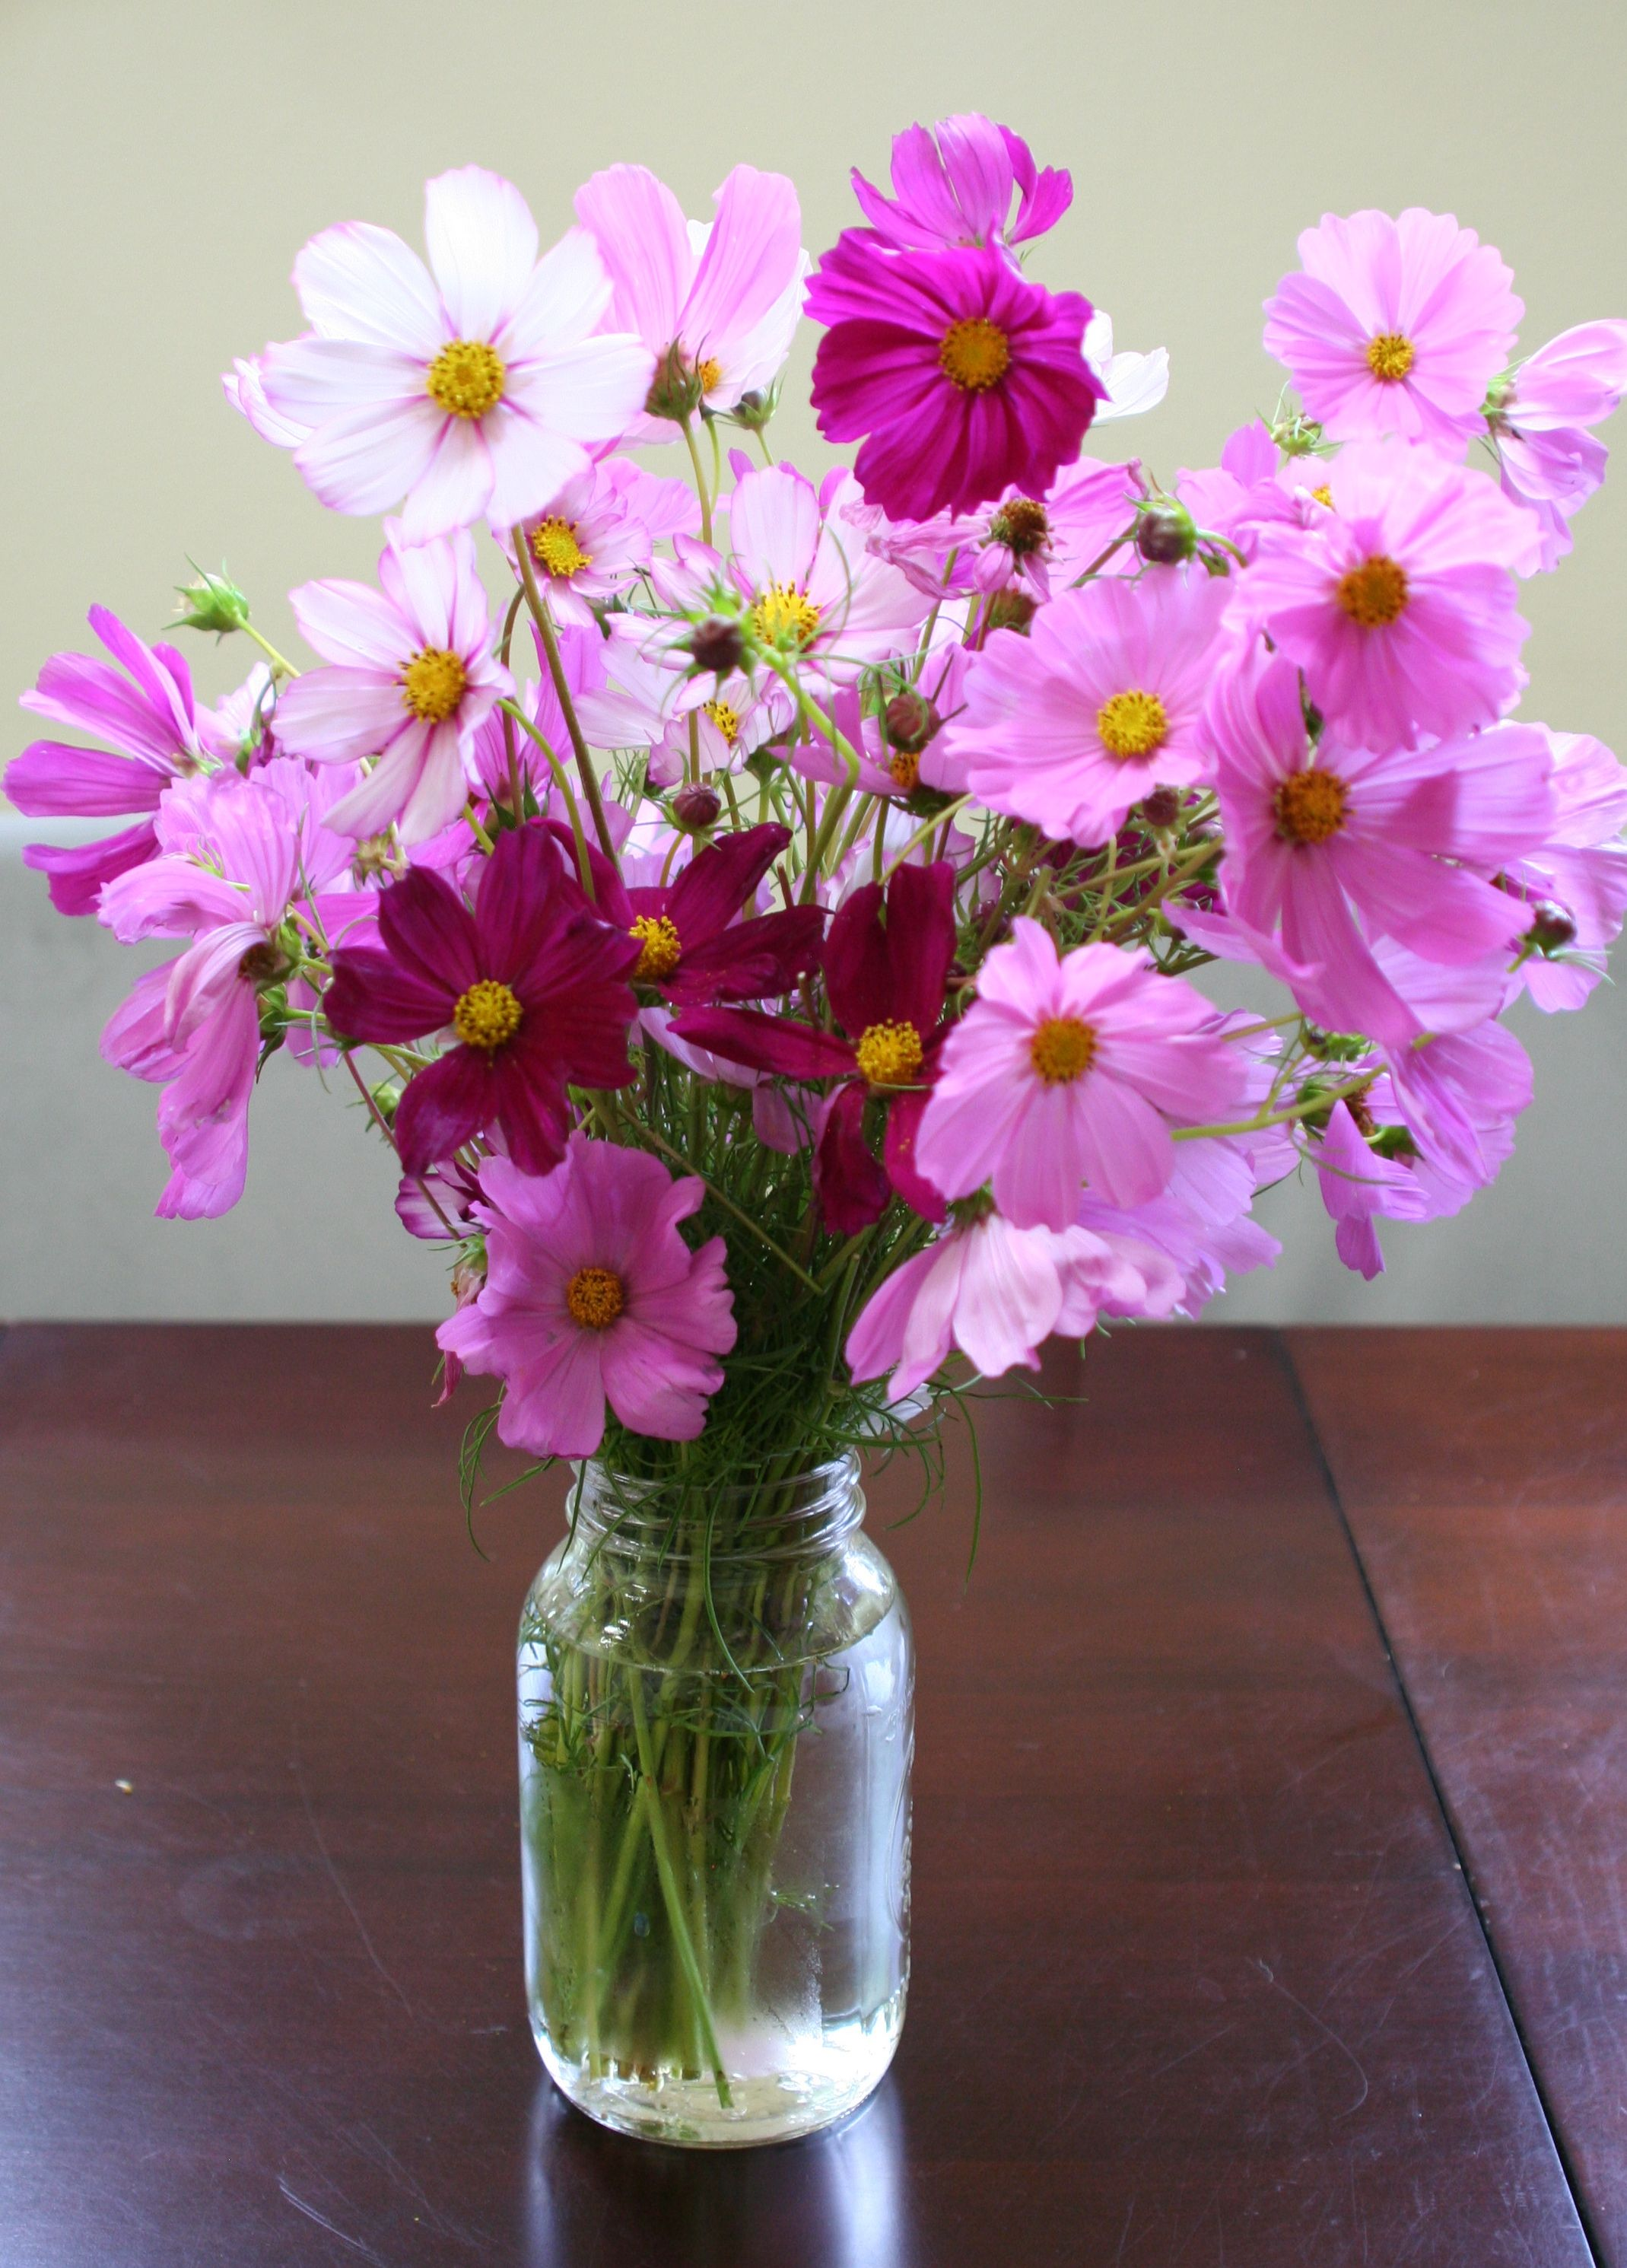 cosmos flower bouquet - Google Search | inspiration from nature ...